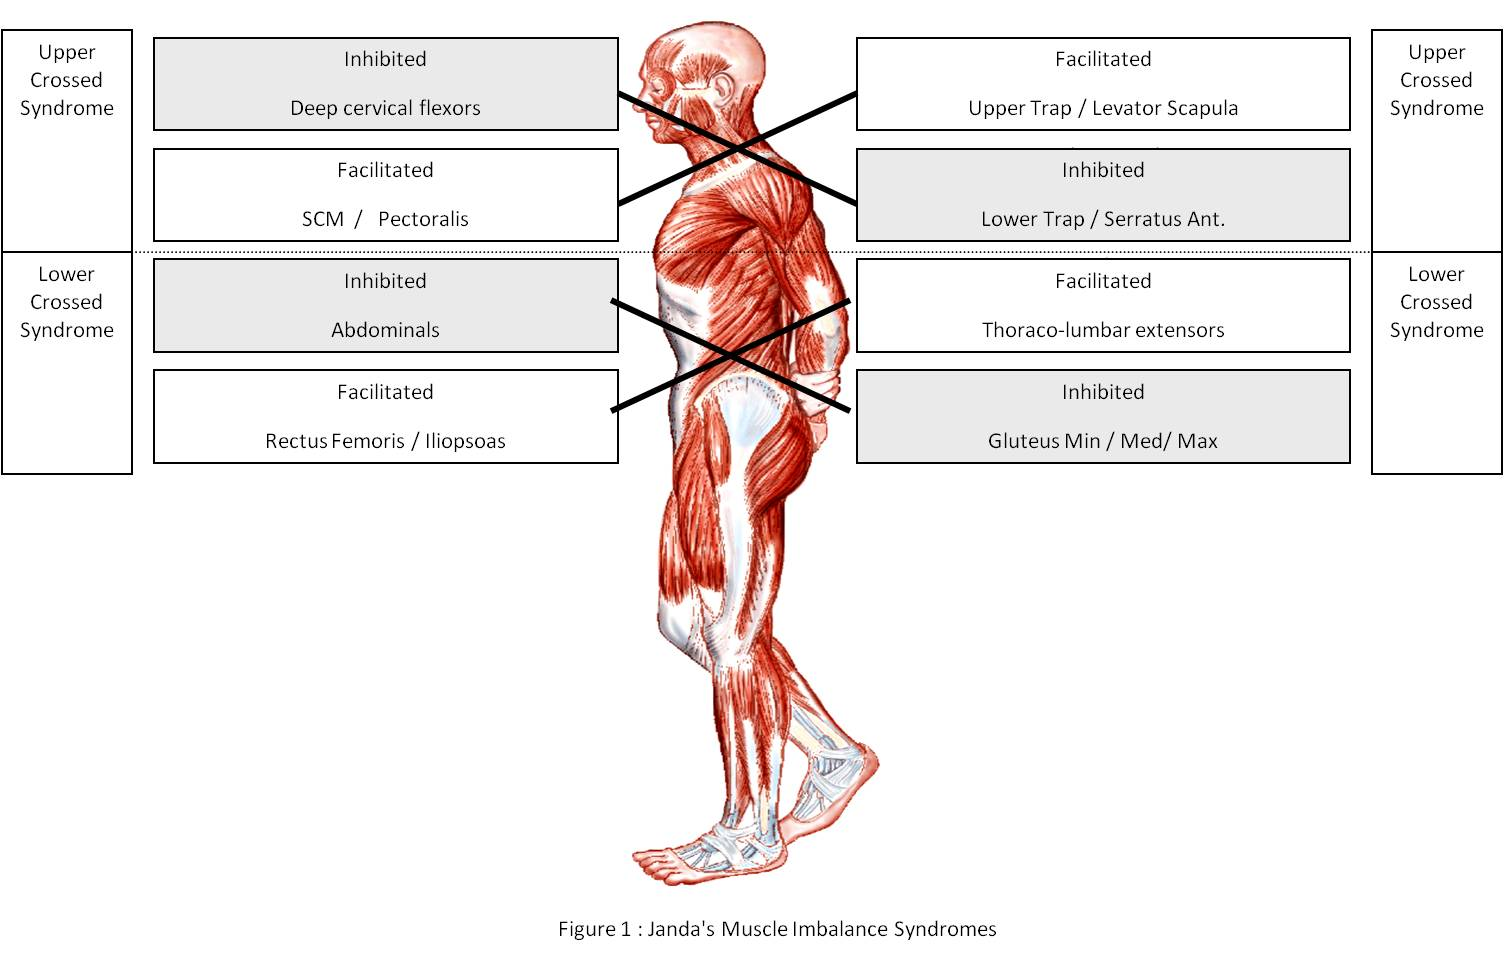 Janda Cross-Syndromes - Postural Syndrome